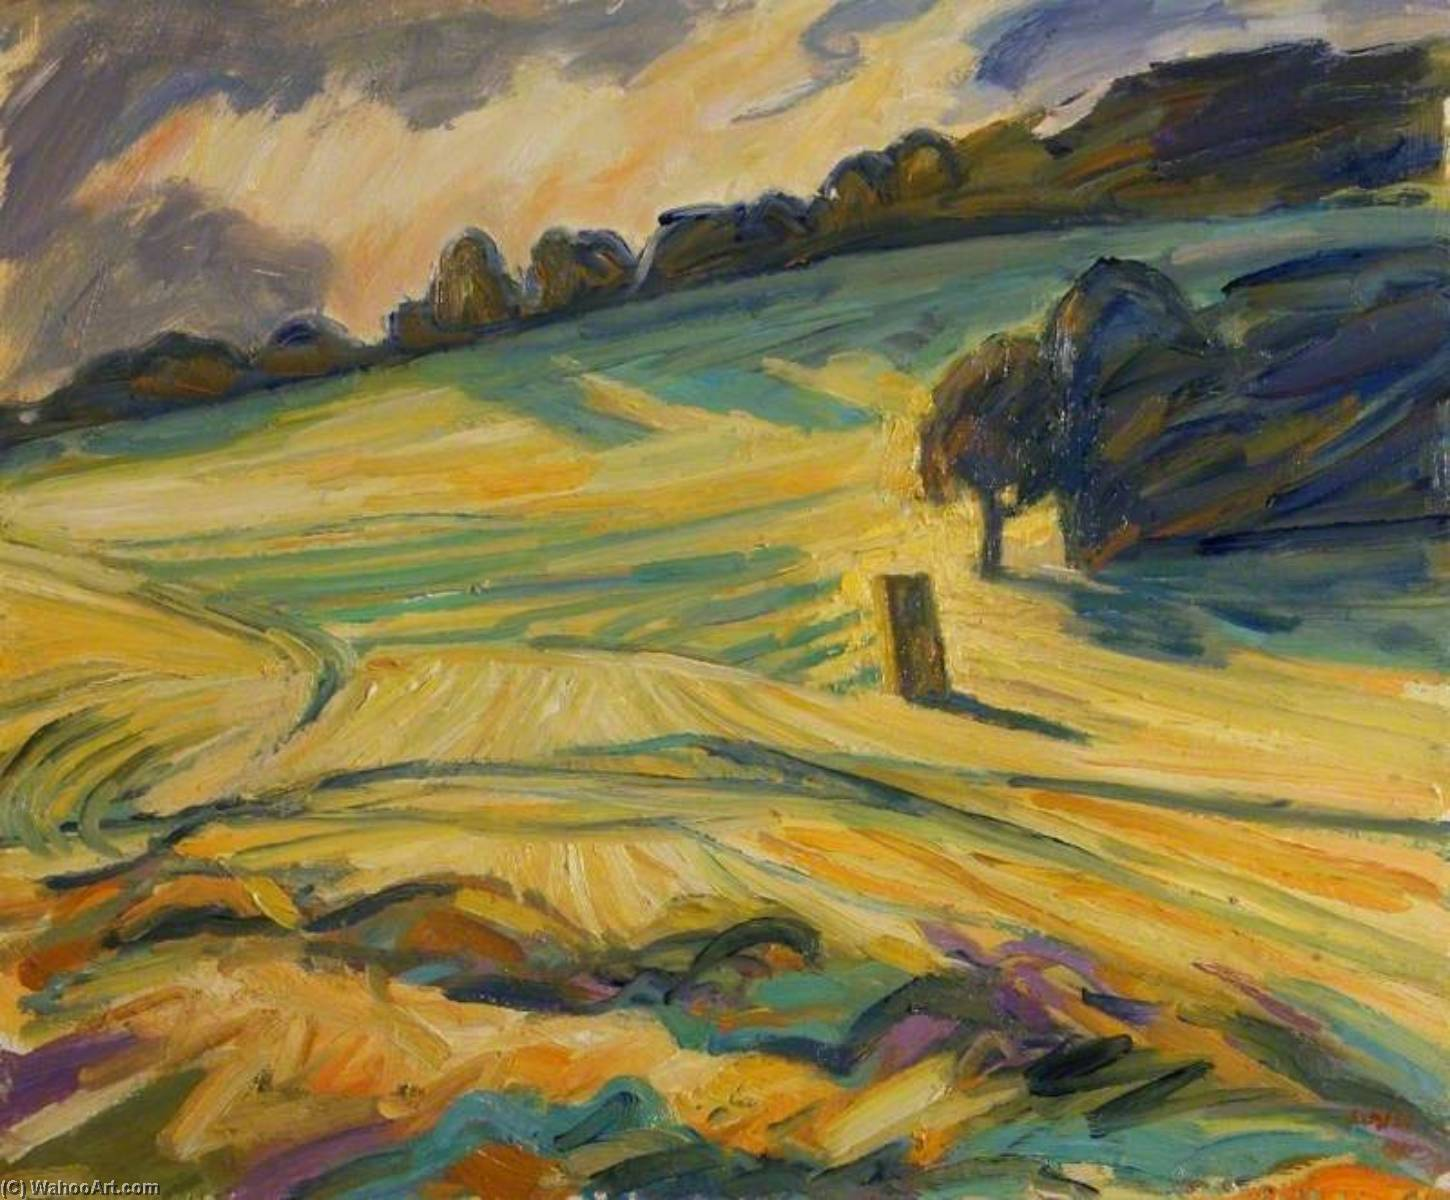 Field at Hook End Lane (Lower Basildon), Oil by Nick Schlee